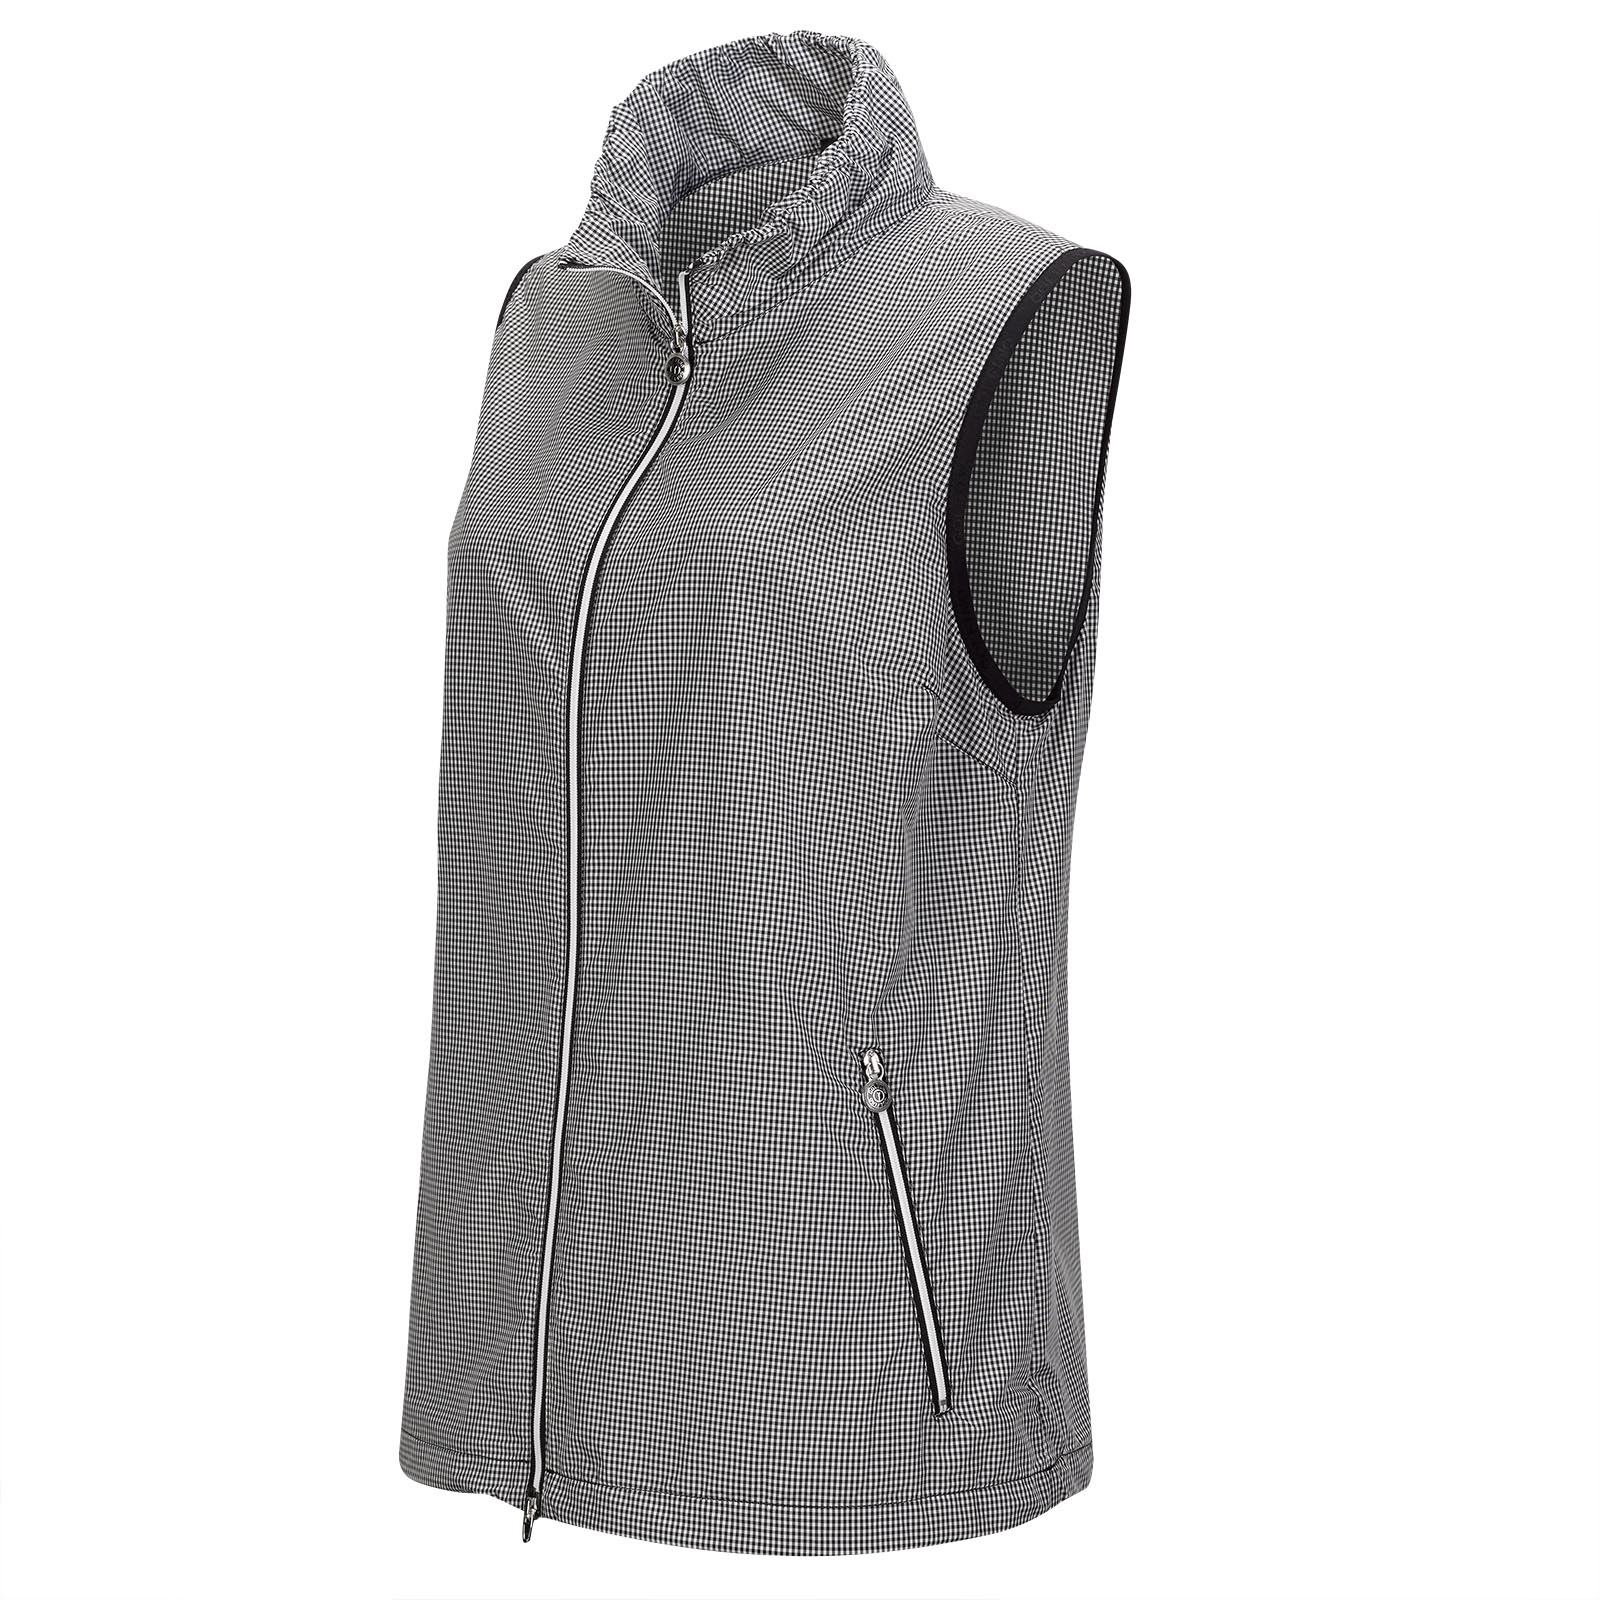 Wind Protection Damen Golfweste mit stylischem Vichy Muster